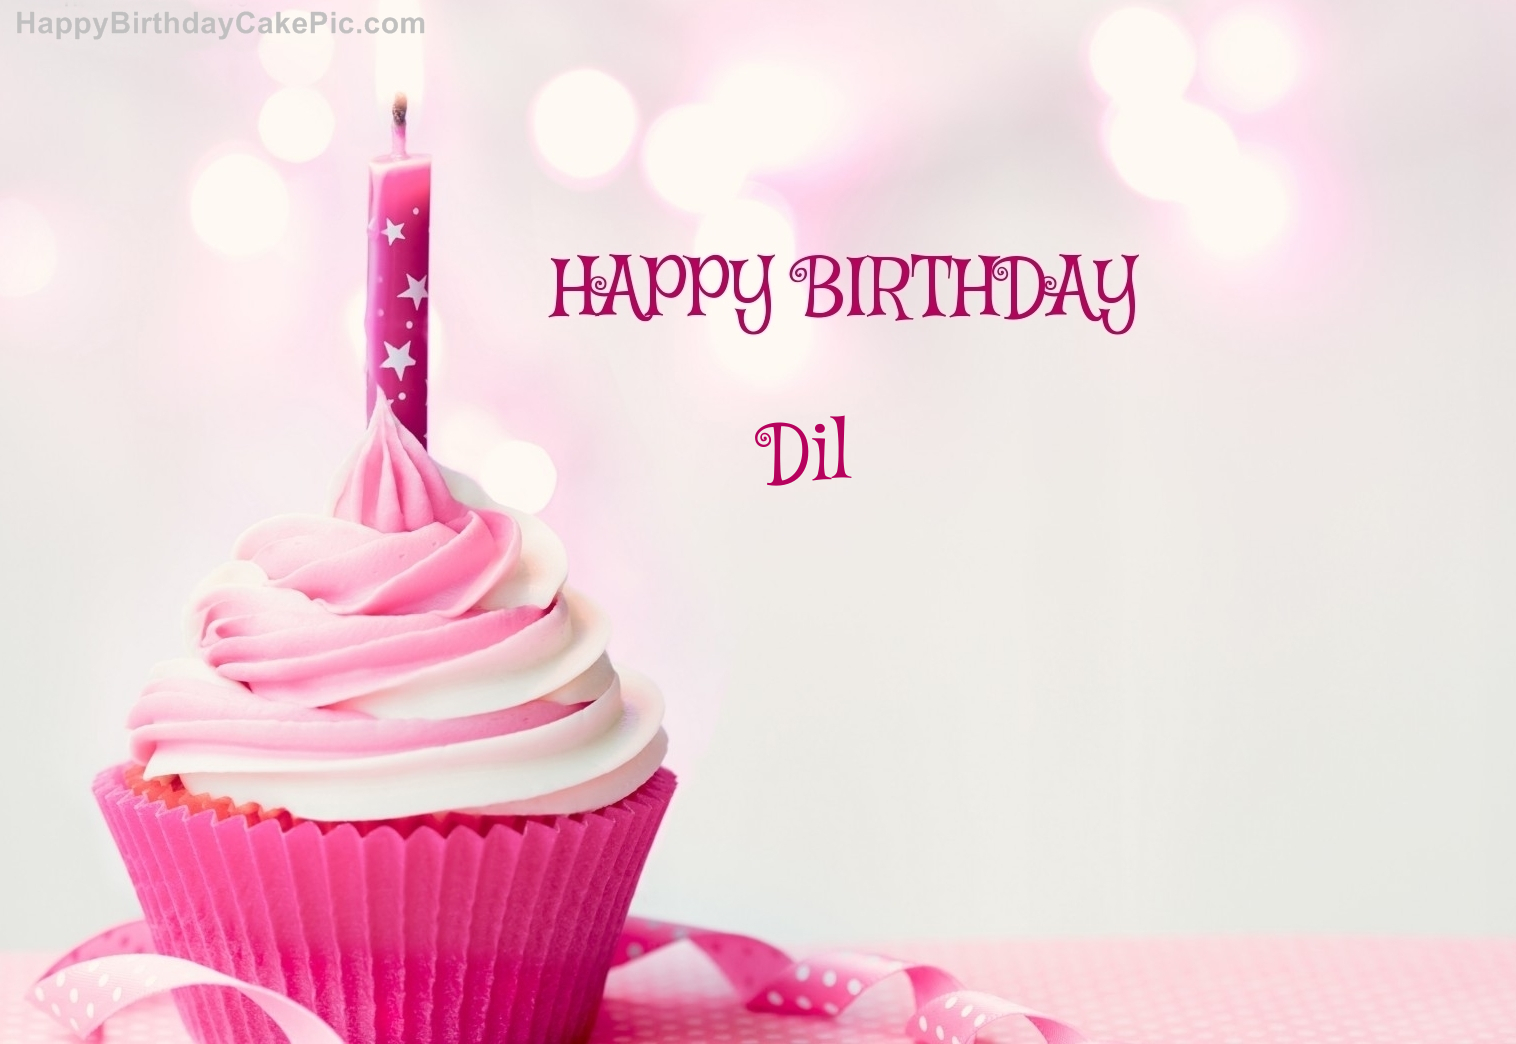 Happy Birthday Cupcake Candle Pink Cake For Dil